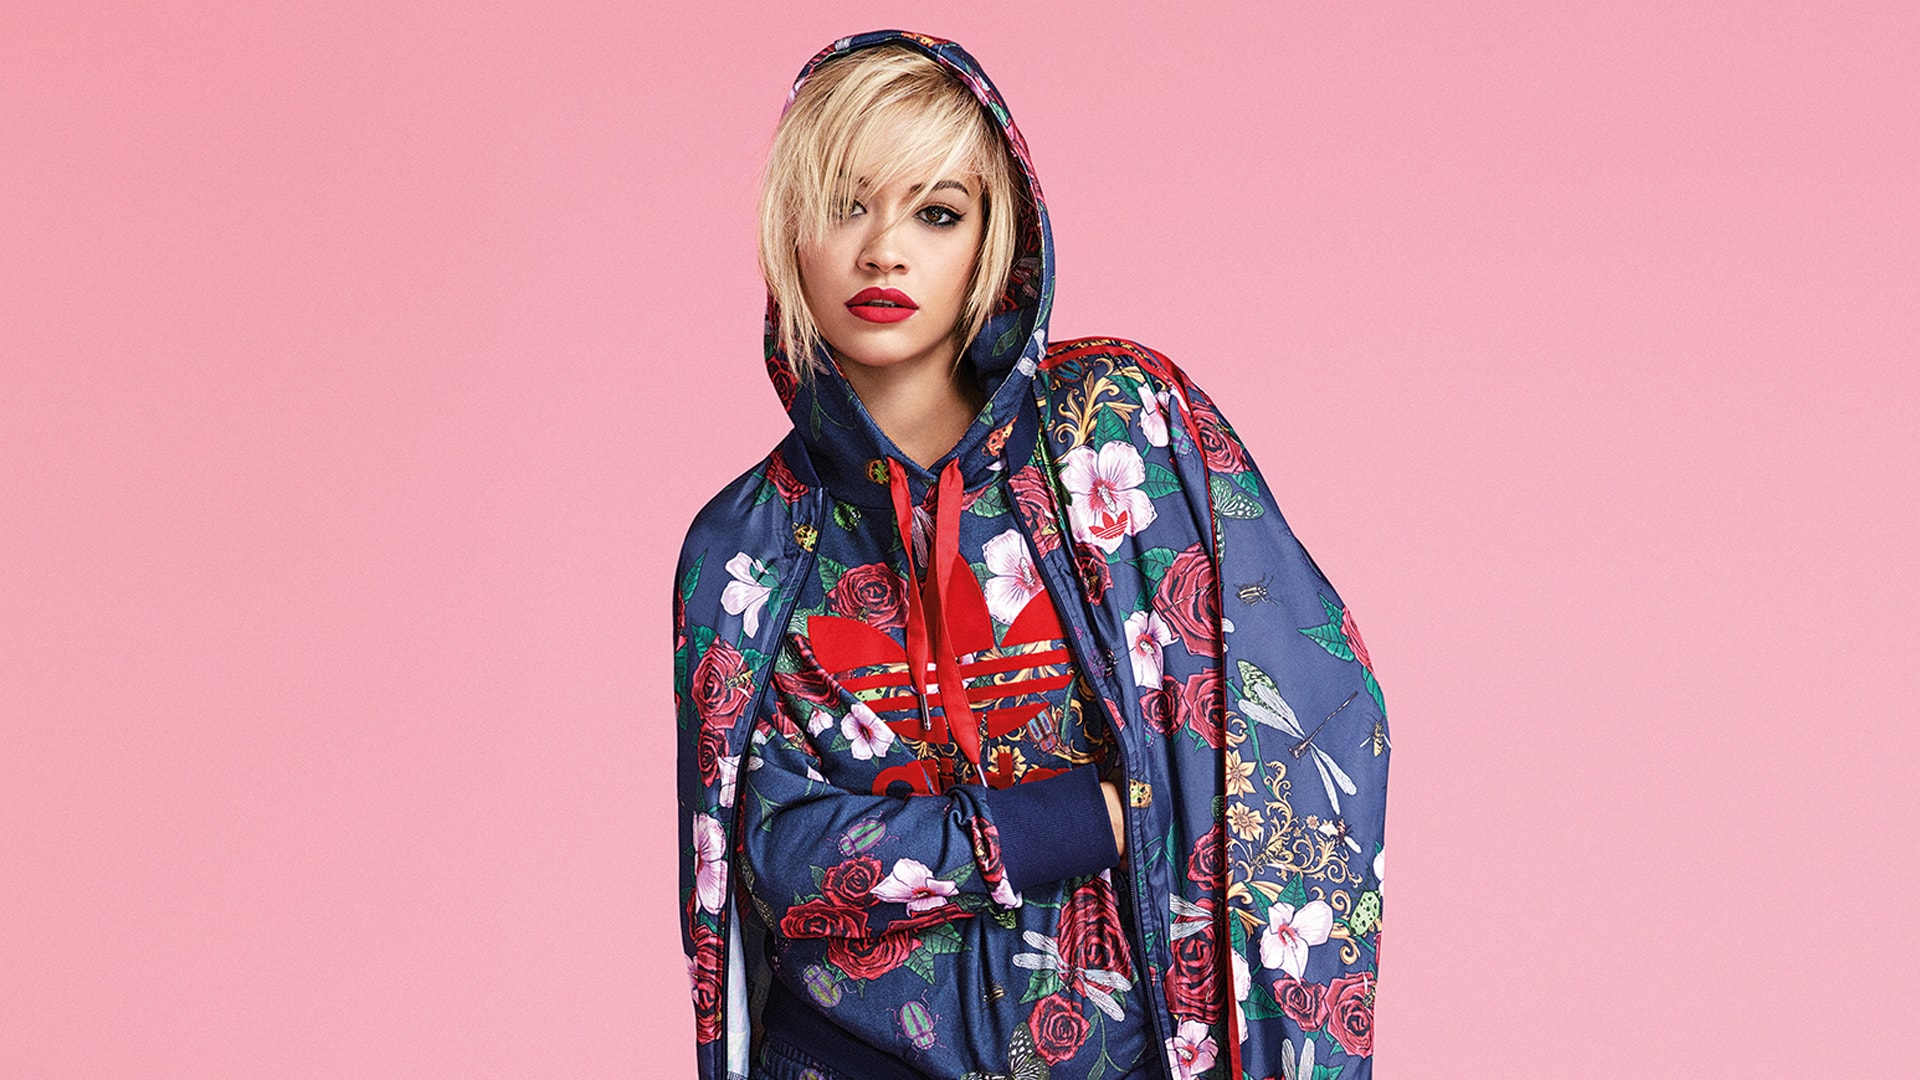 Rita-Ora-Wallpapers-HD-03-min.jpg